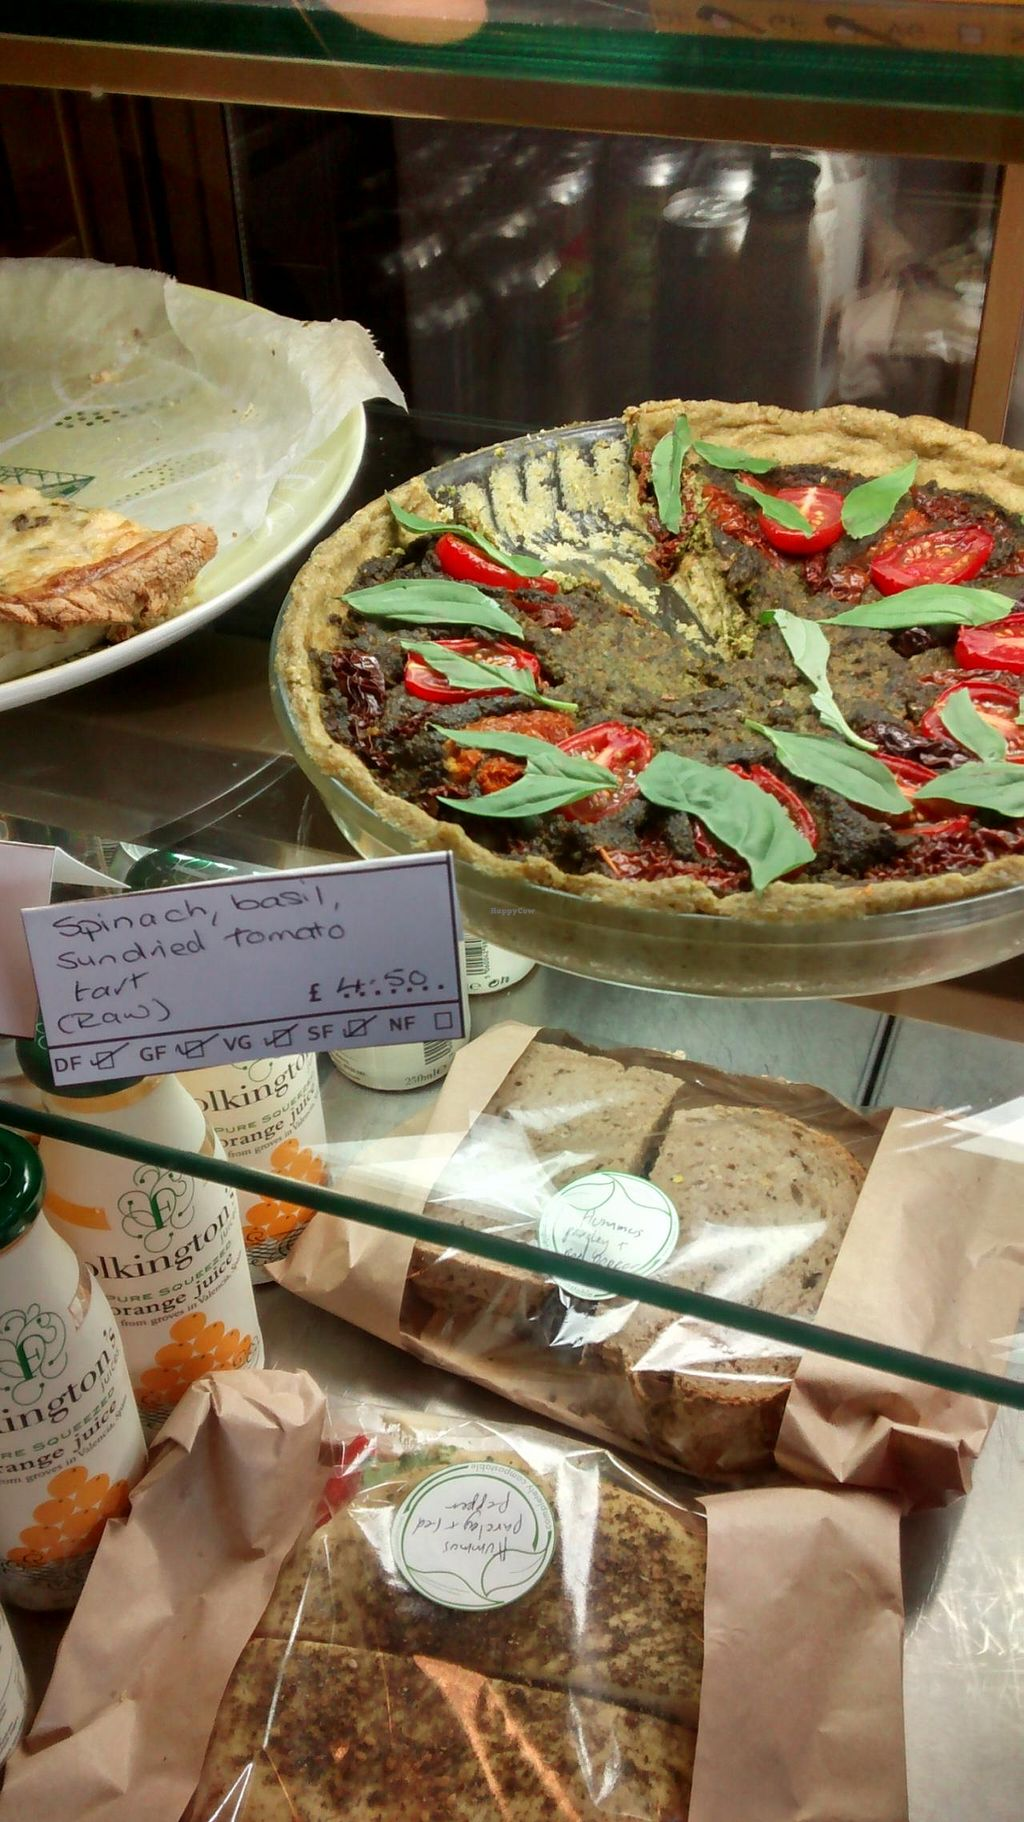 """Photo of CLOSED: Meadowlark No. 39  by <a href=""""/members/profile/craigmc"""">craigmc</a> <br/>A vegan savoury tart <br/> April 17, 2014  - <a href='/contact/abuse/image/46150/67780'>Report</a>"""